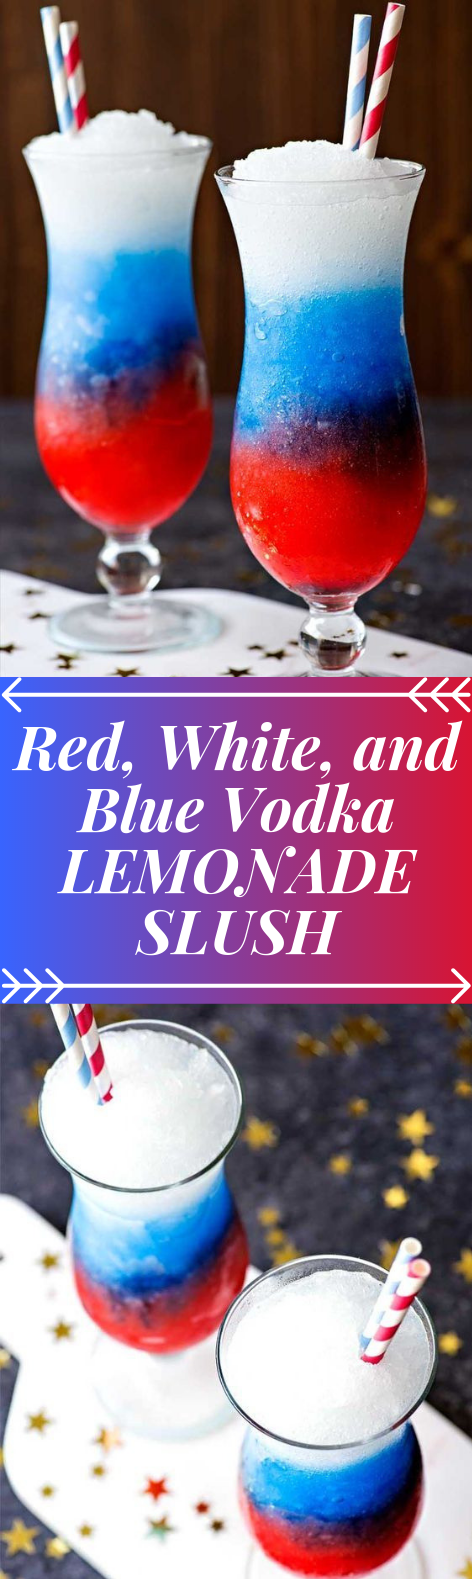 RED, WHITE, AND BLUE VODKA LEMONADE SLUSH #Cocktail #FreshDrink